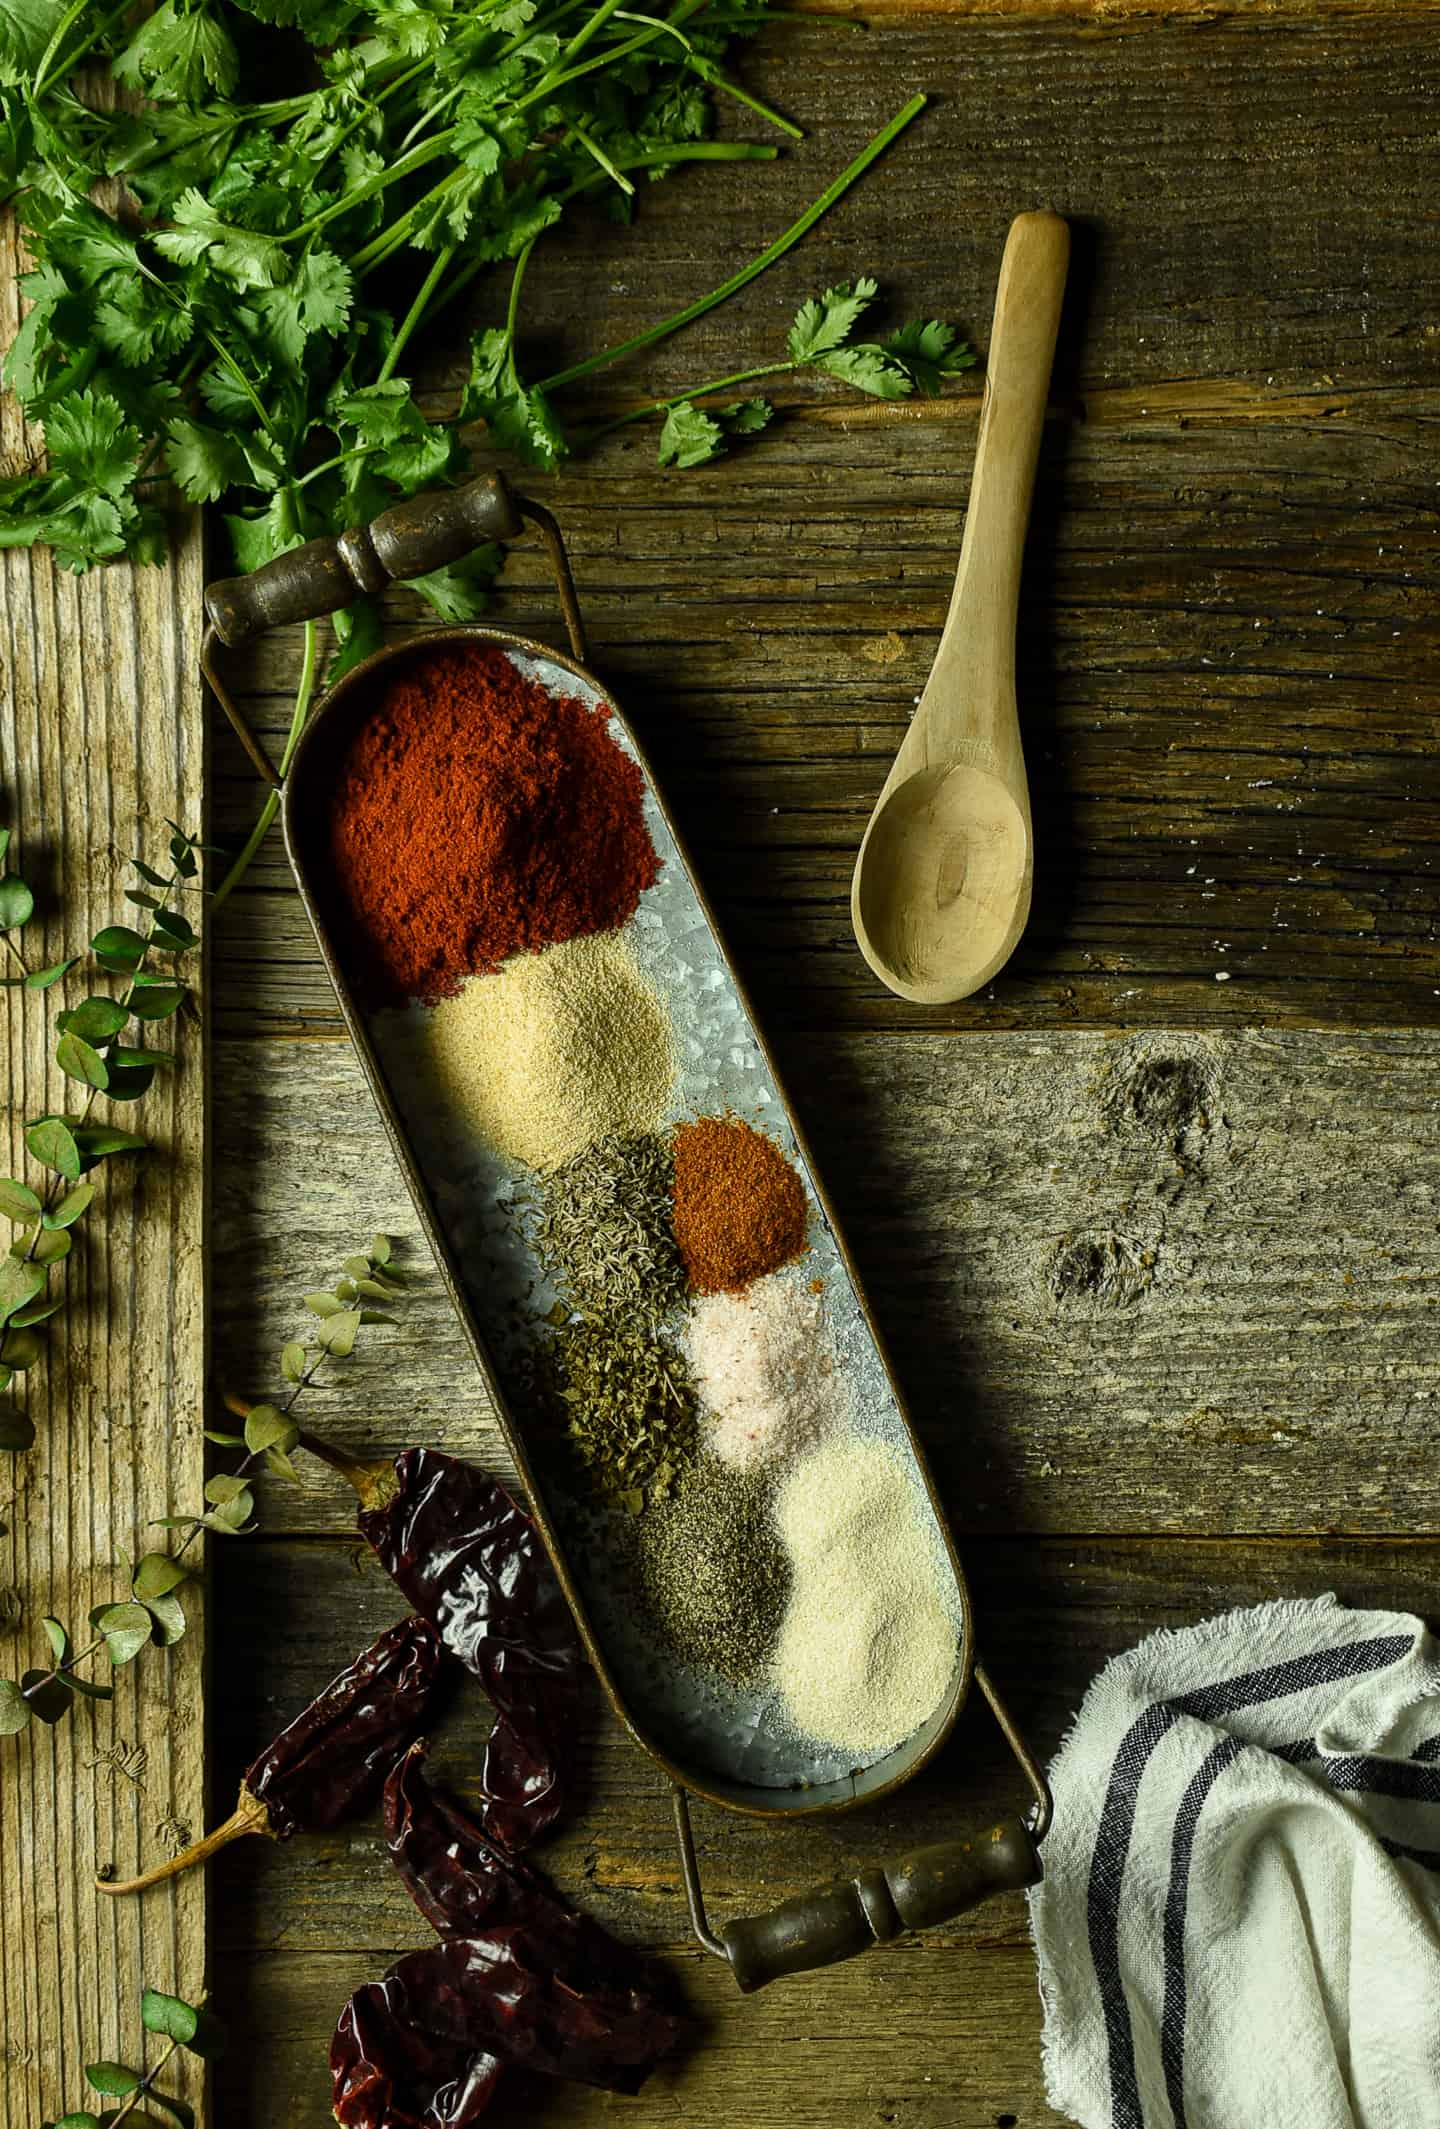 Spices on tray with wooden spoon.